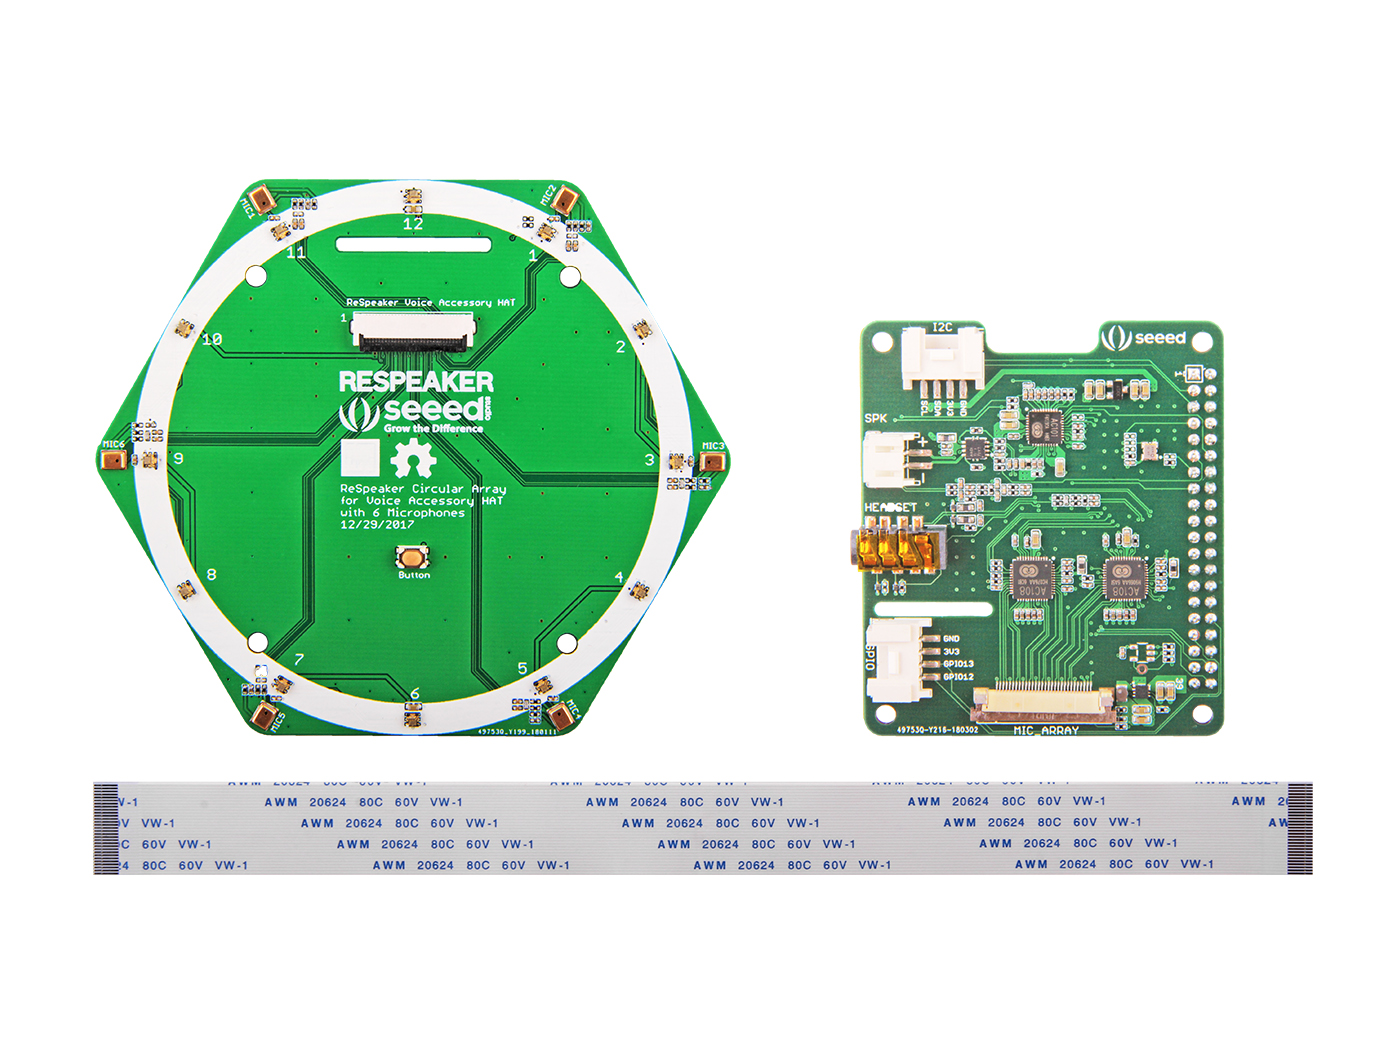 Respeaker Mic Array V20 Voice Recognition System And Embedded Controllers 6 Circular Kit For Raspberry Pi